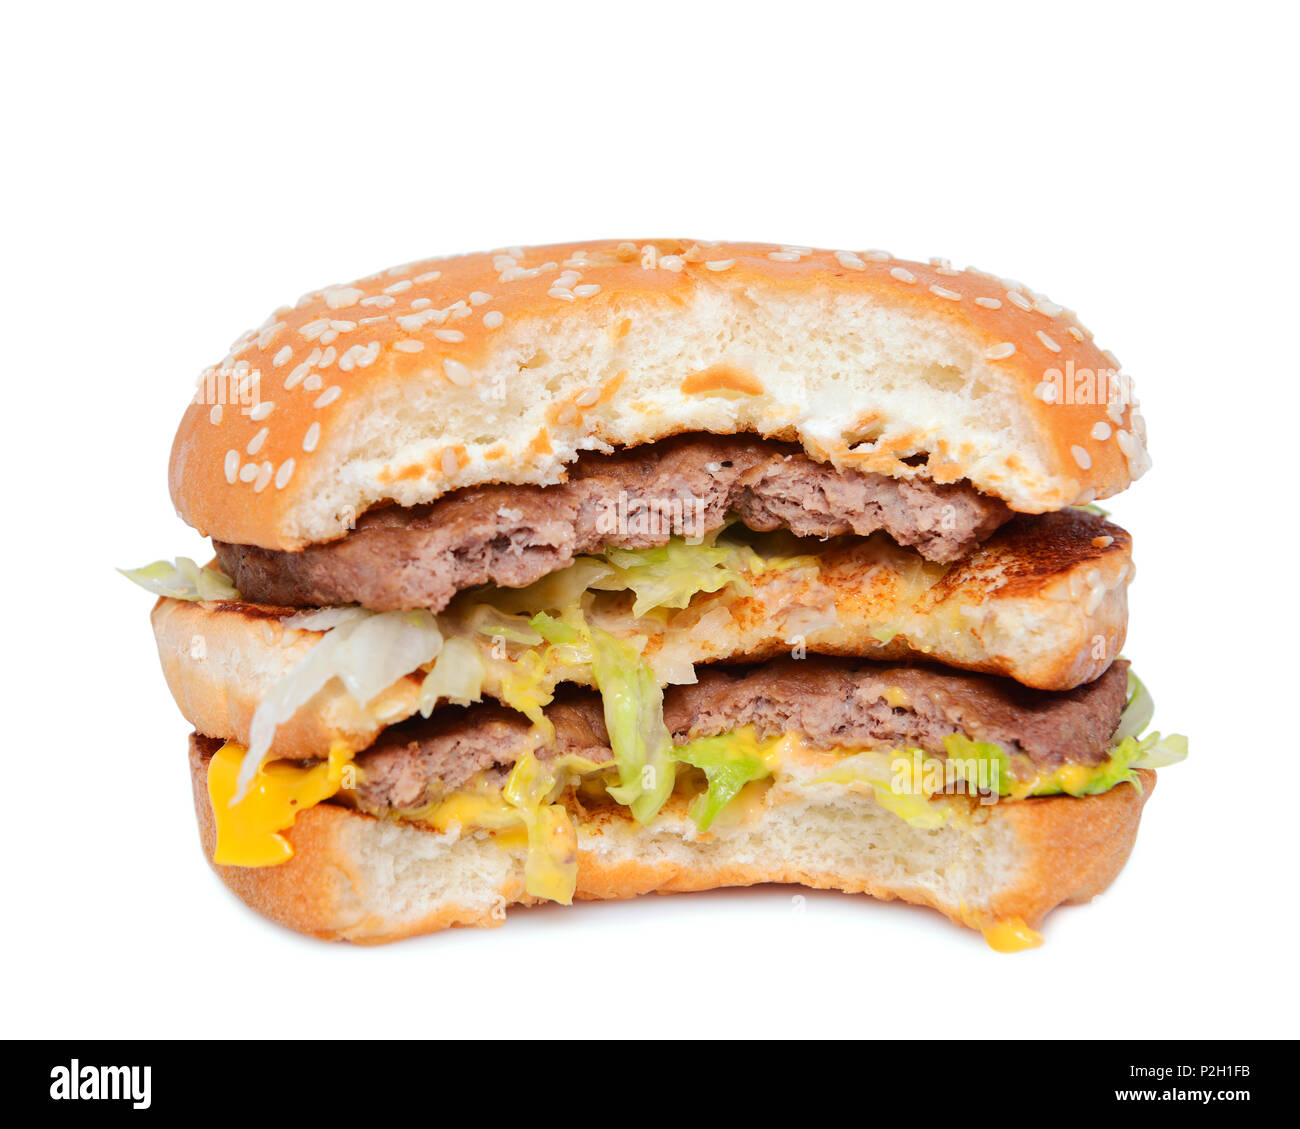 Burger Against a White Background, Close Up - Stock Image